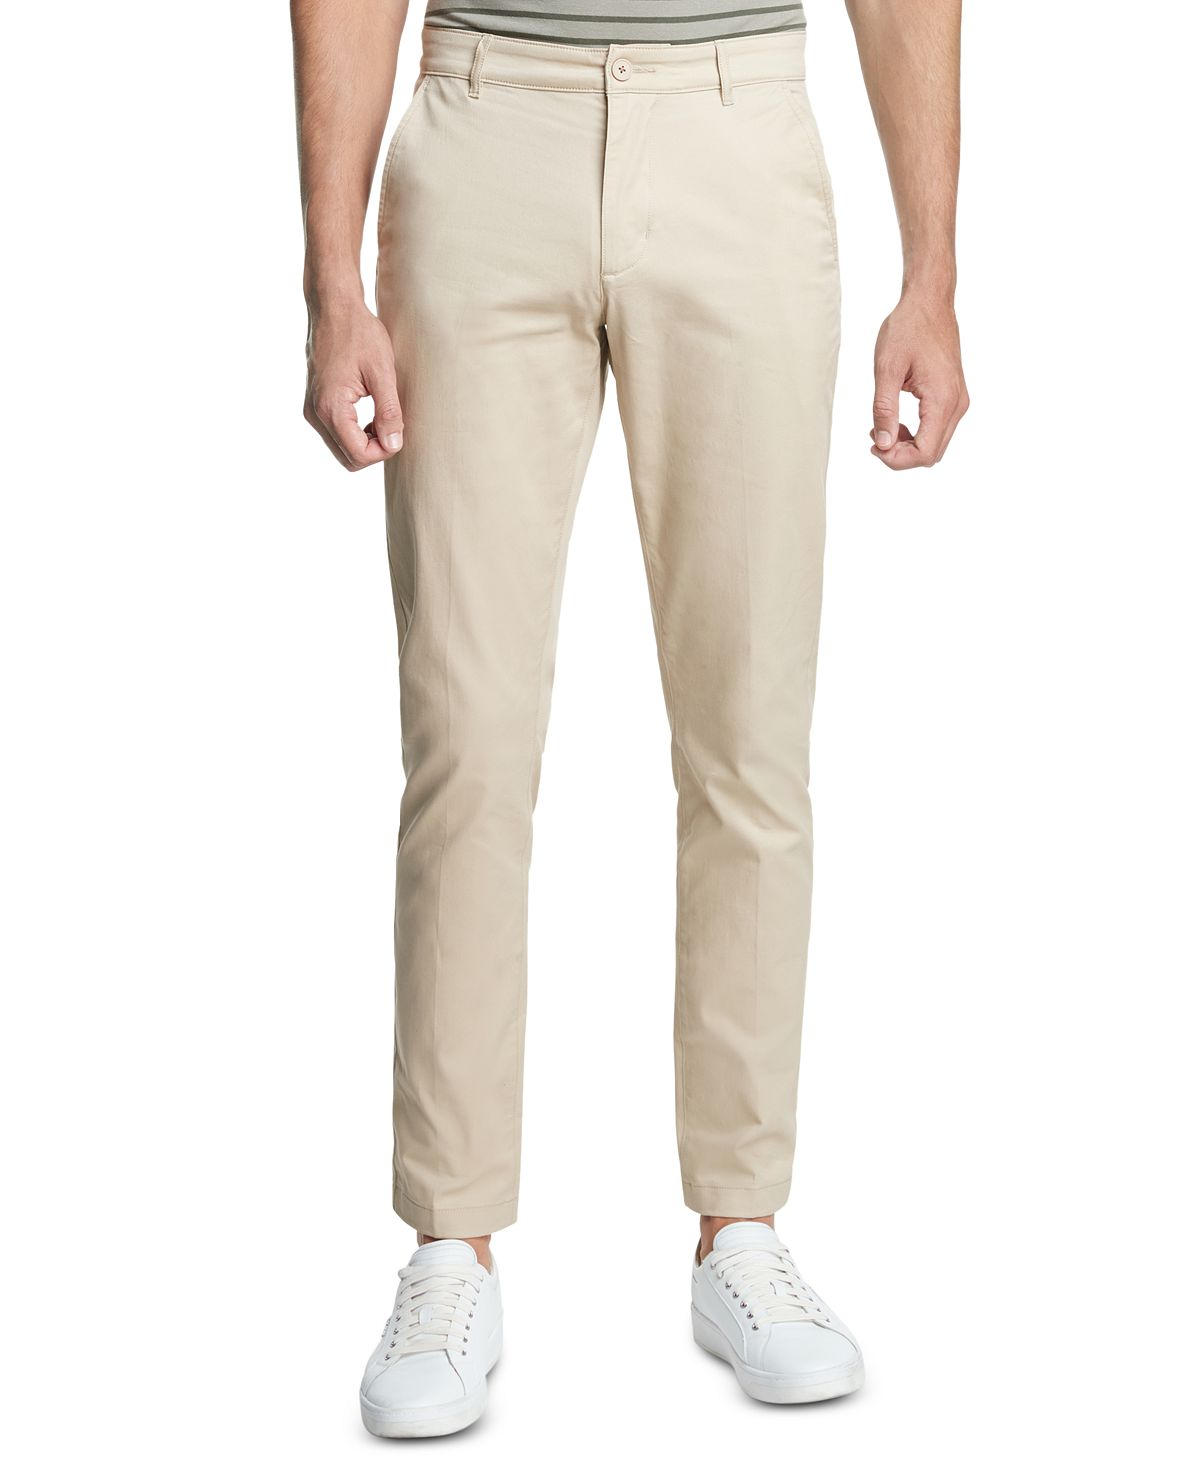 Dkny Straight-fit Core Twill Pants Sand